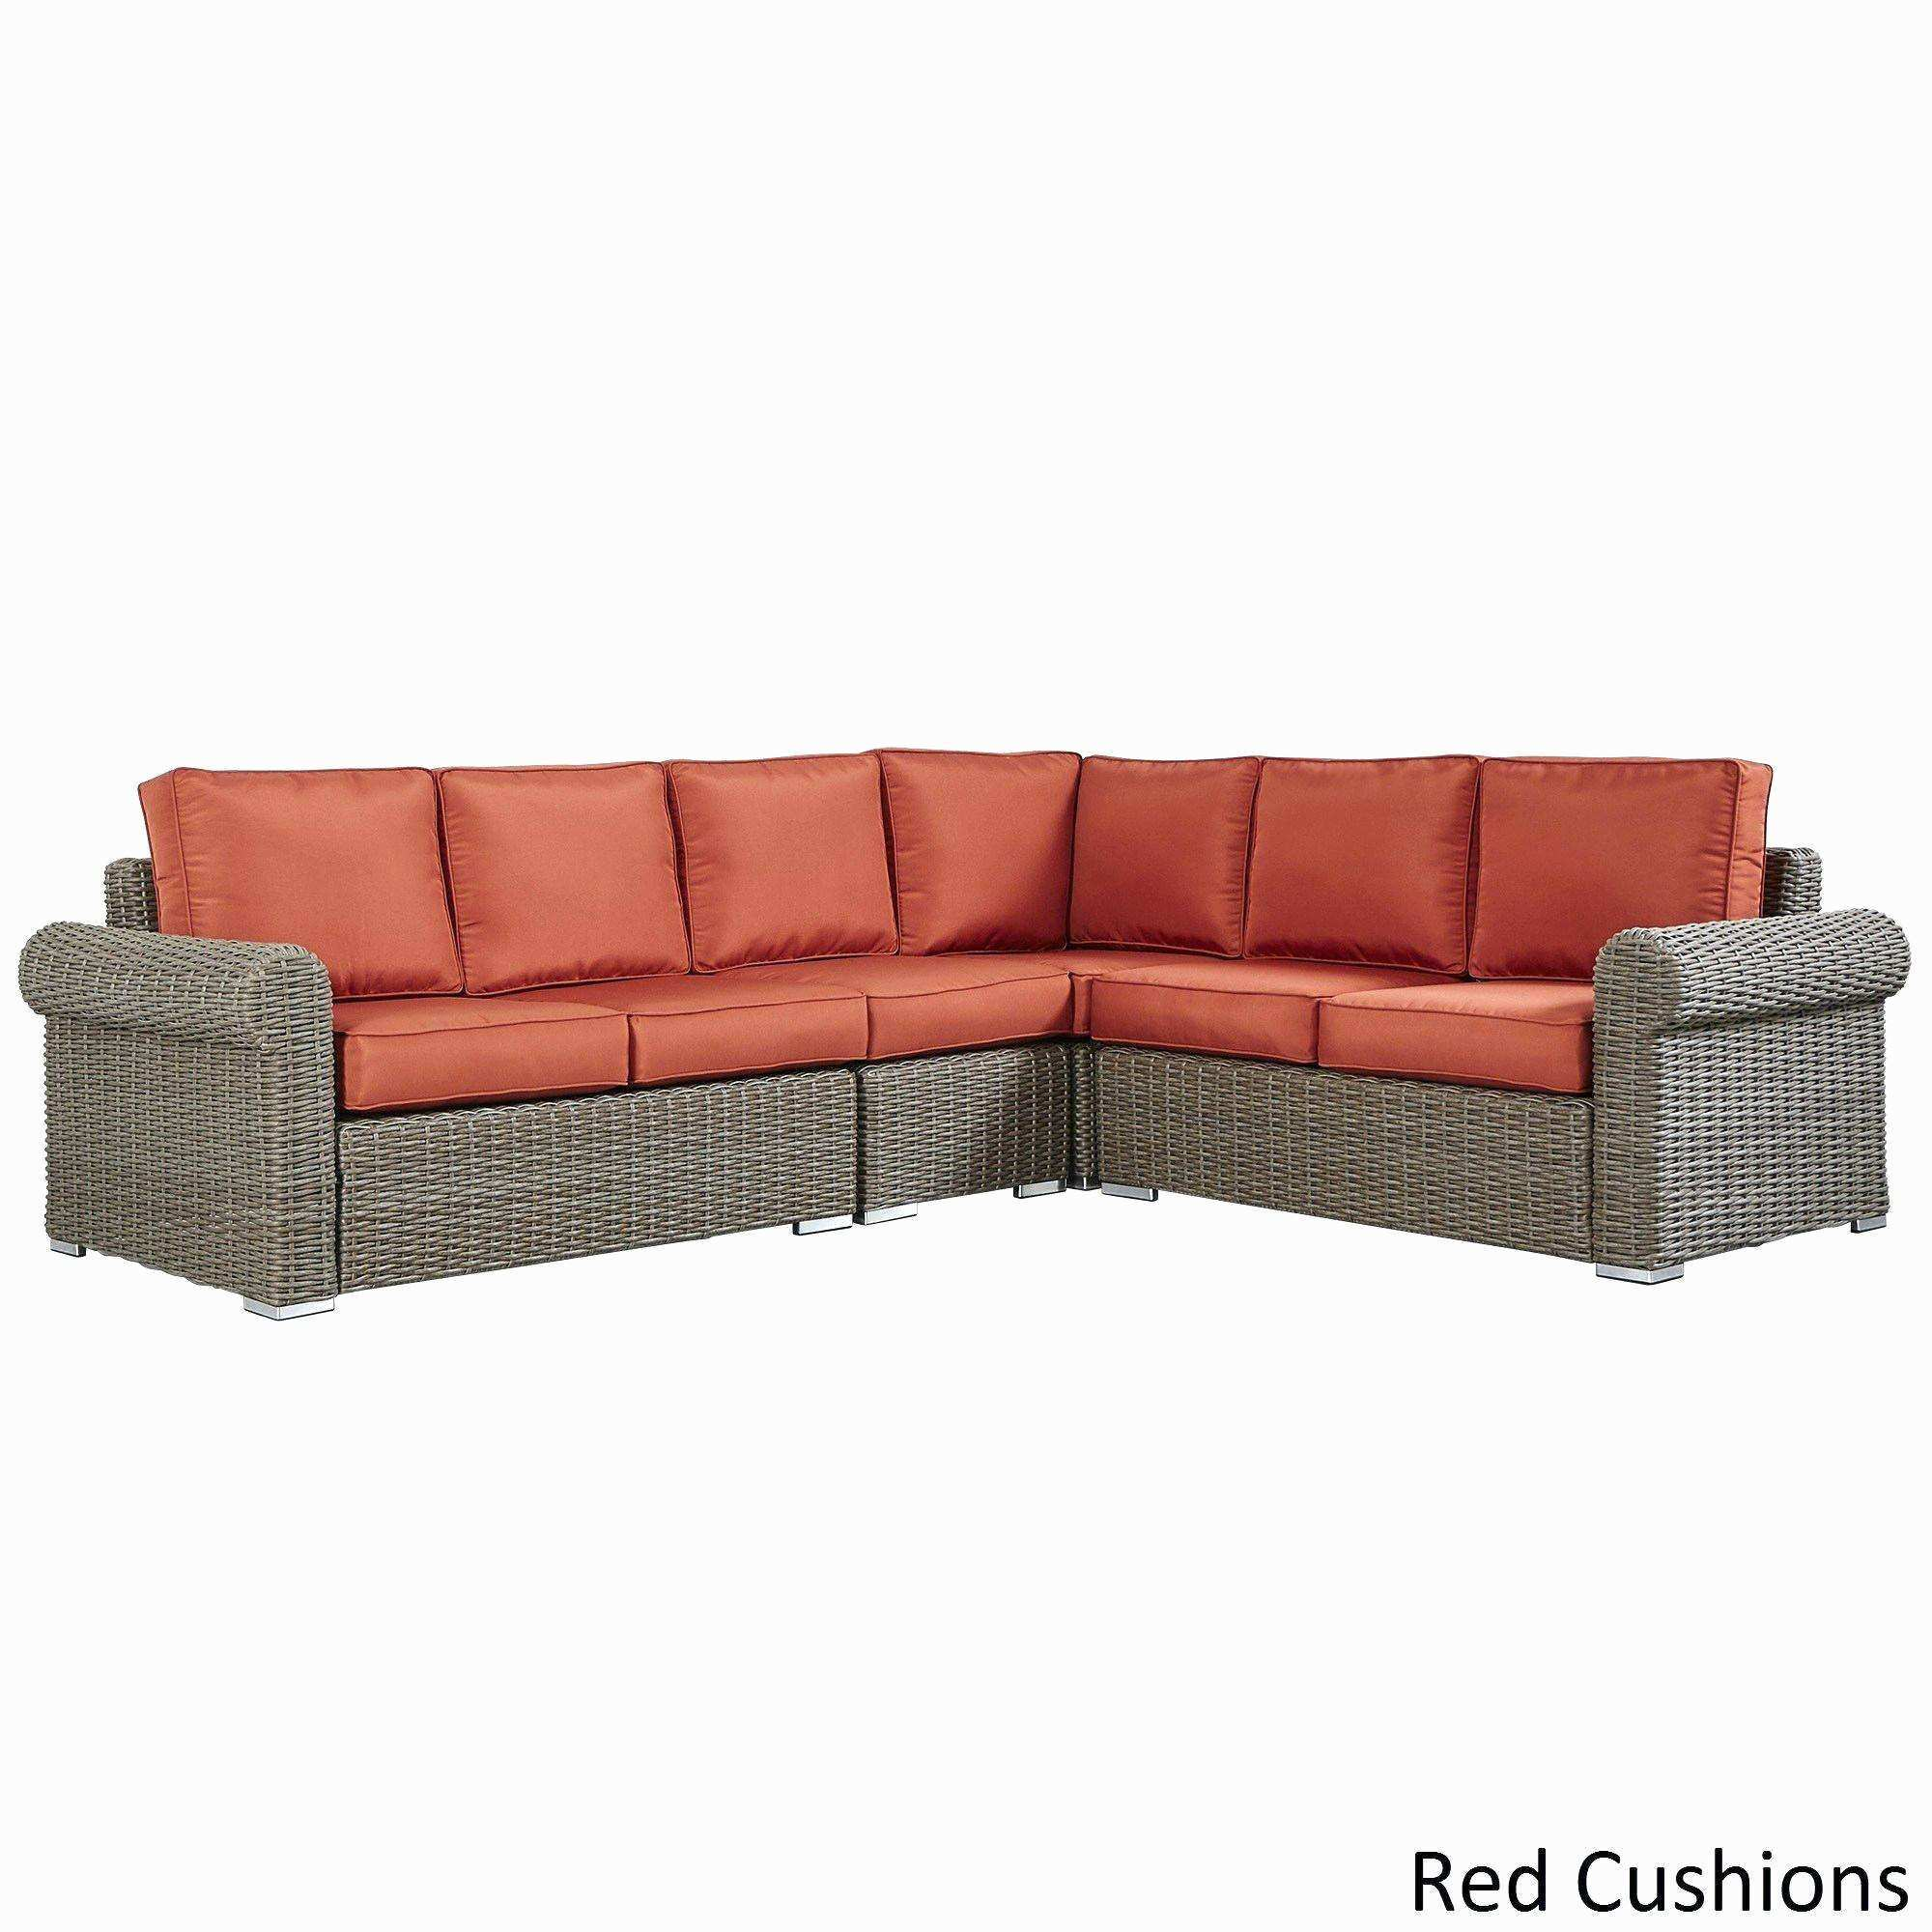 How to Decorate Living Room Table Beautiful Wicker Outdoor sofa 0d